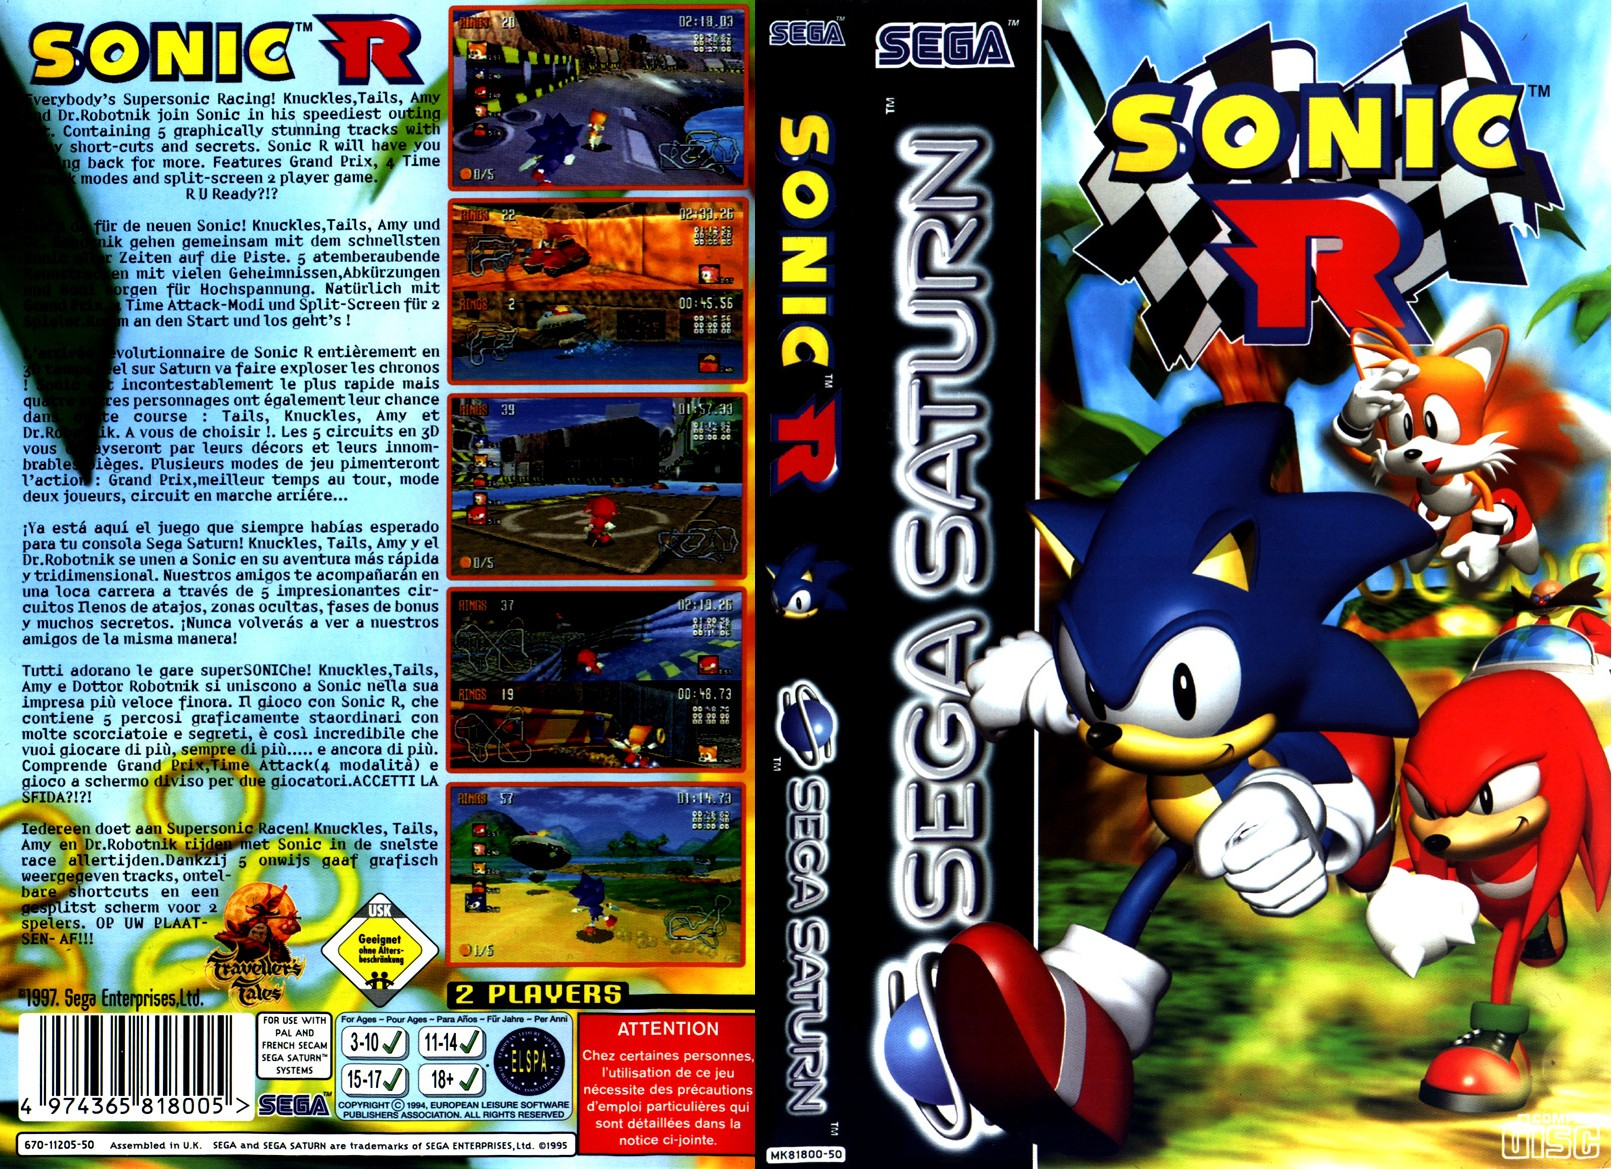 Sega Saturn S Sonic R E Game Covers Box Scans Box Art CD ...